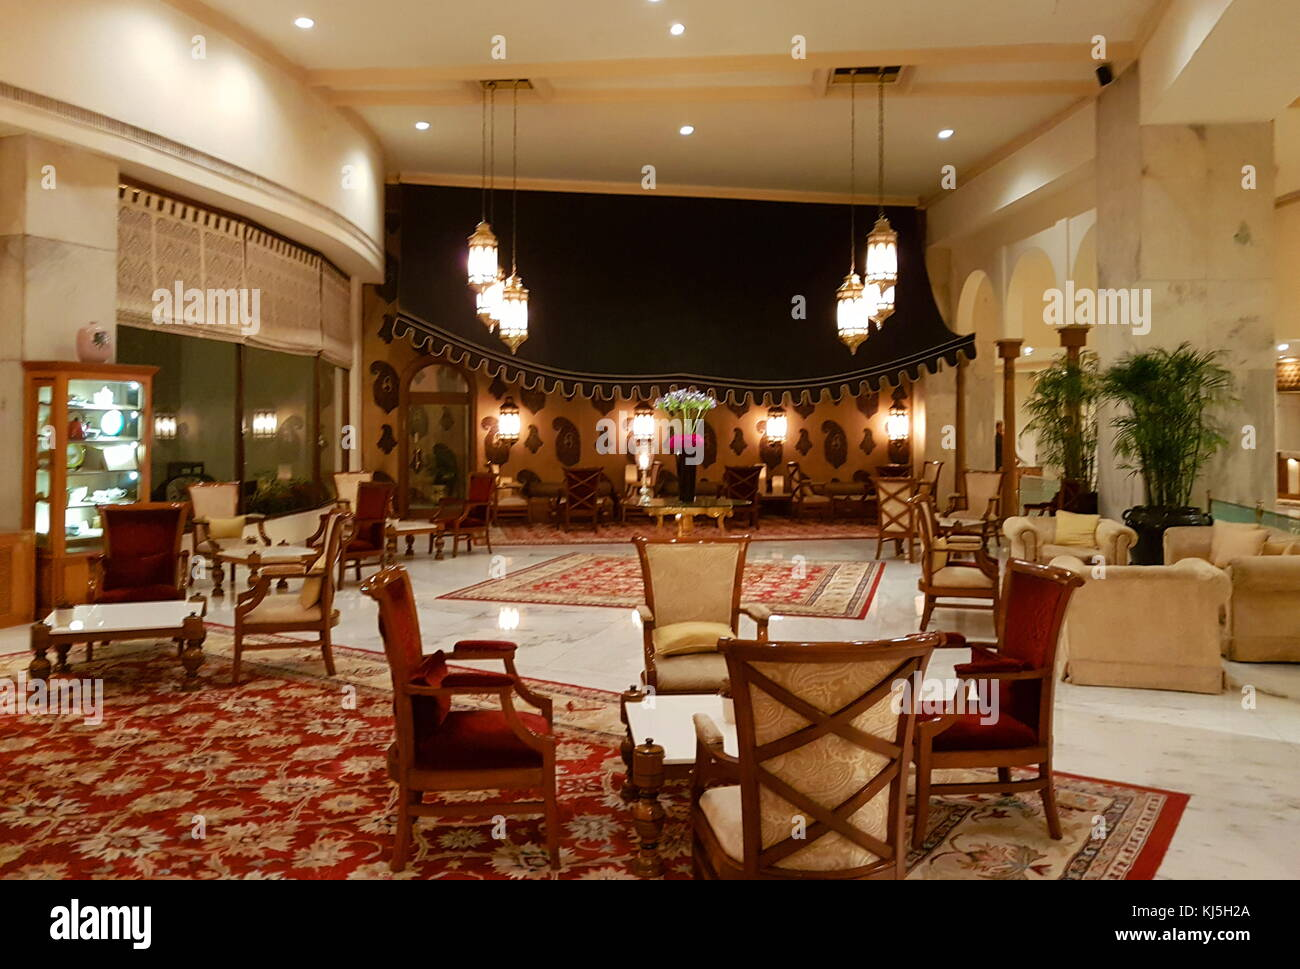 lobby and guest reception area in the Five Star, Taj Palace Hotel, Delhi, India Stock Photo